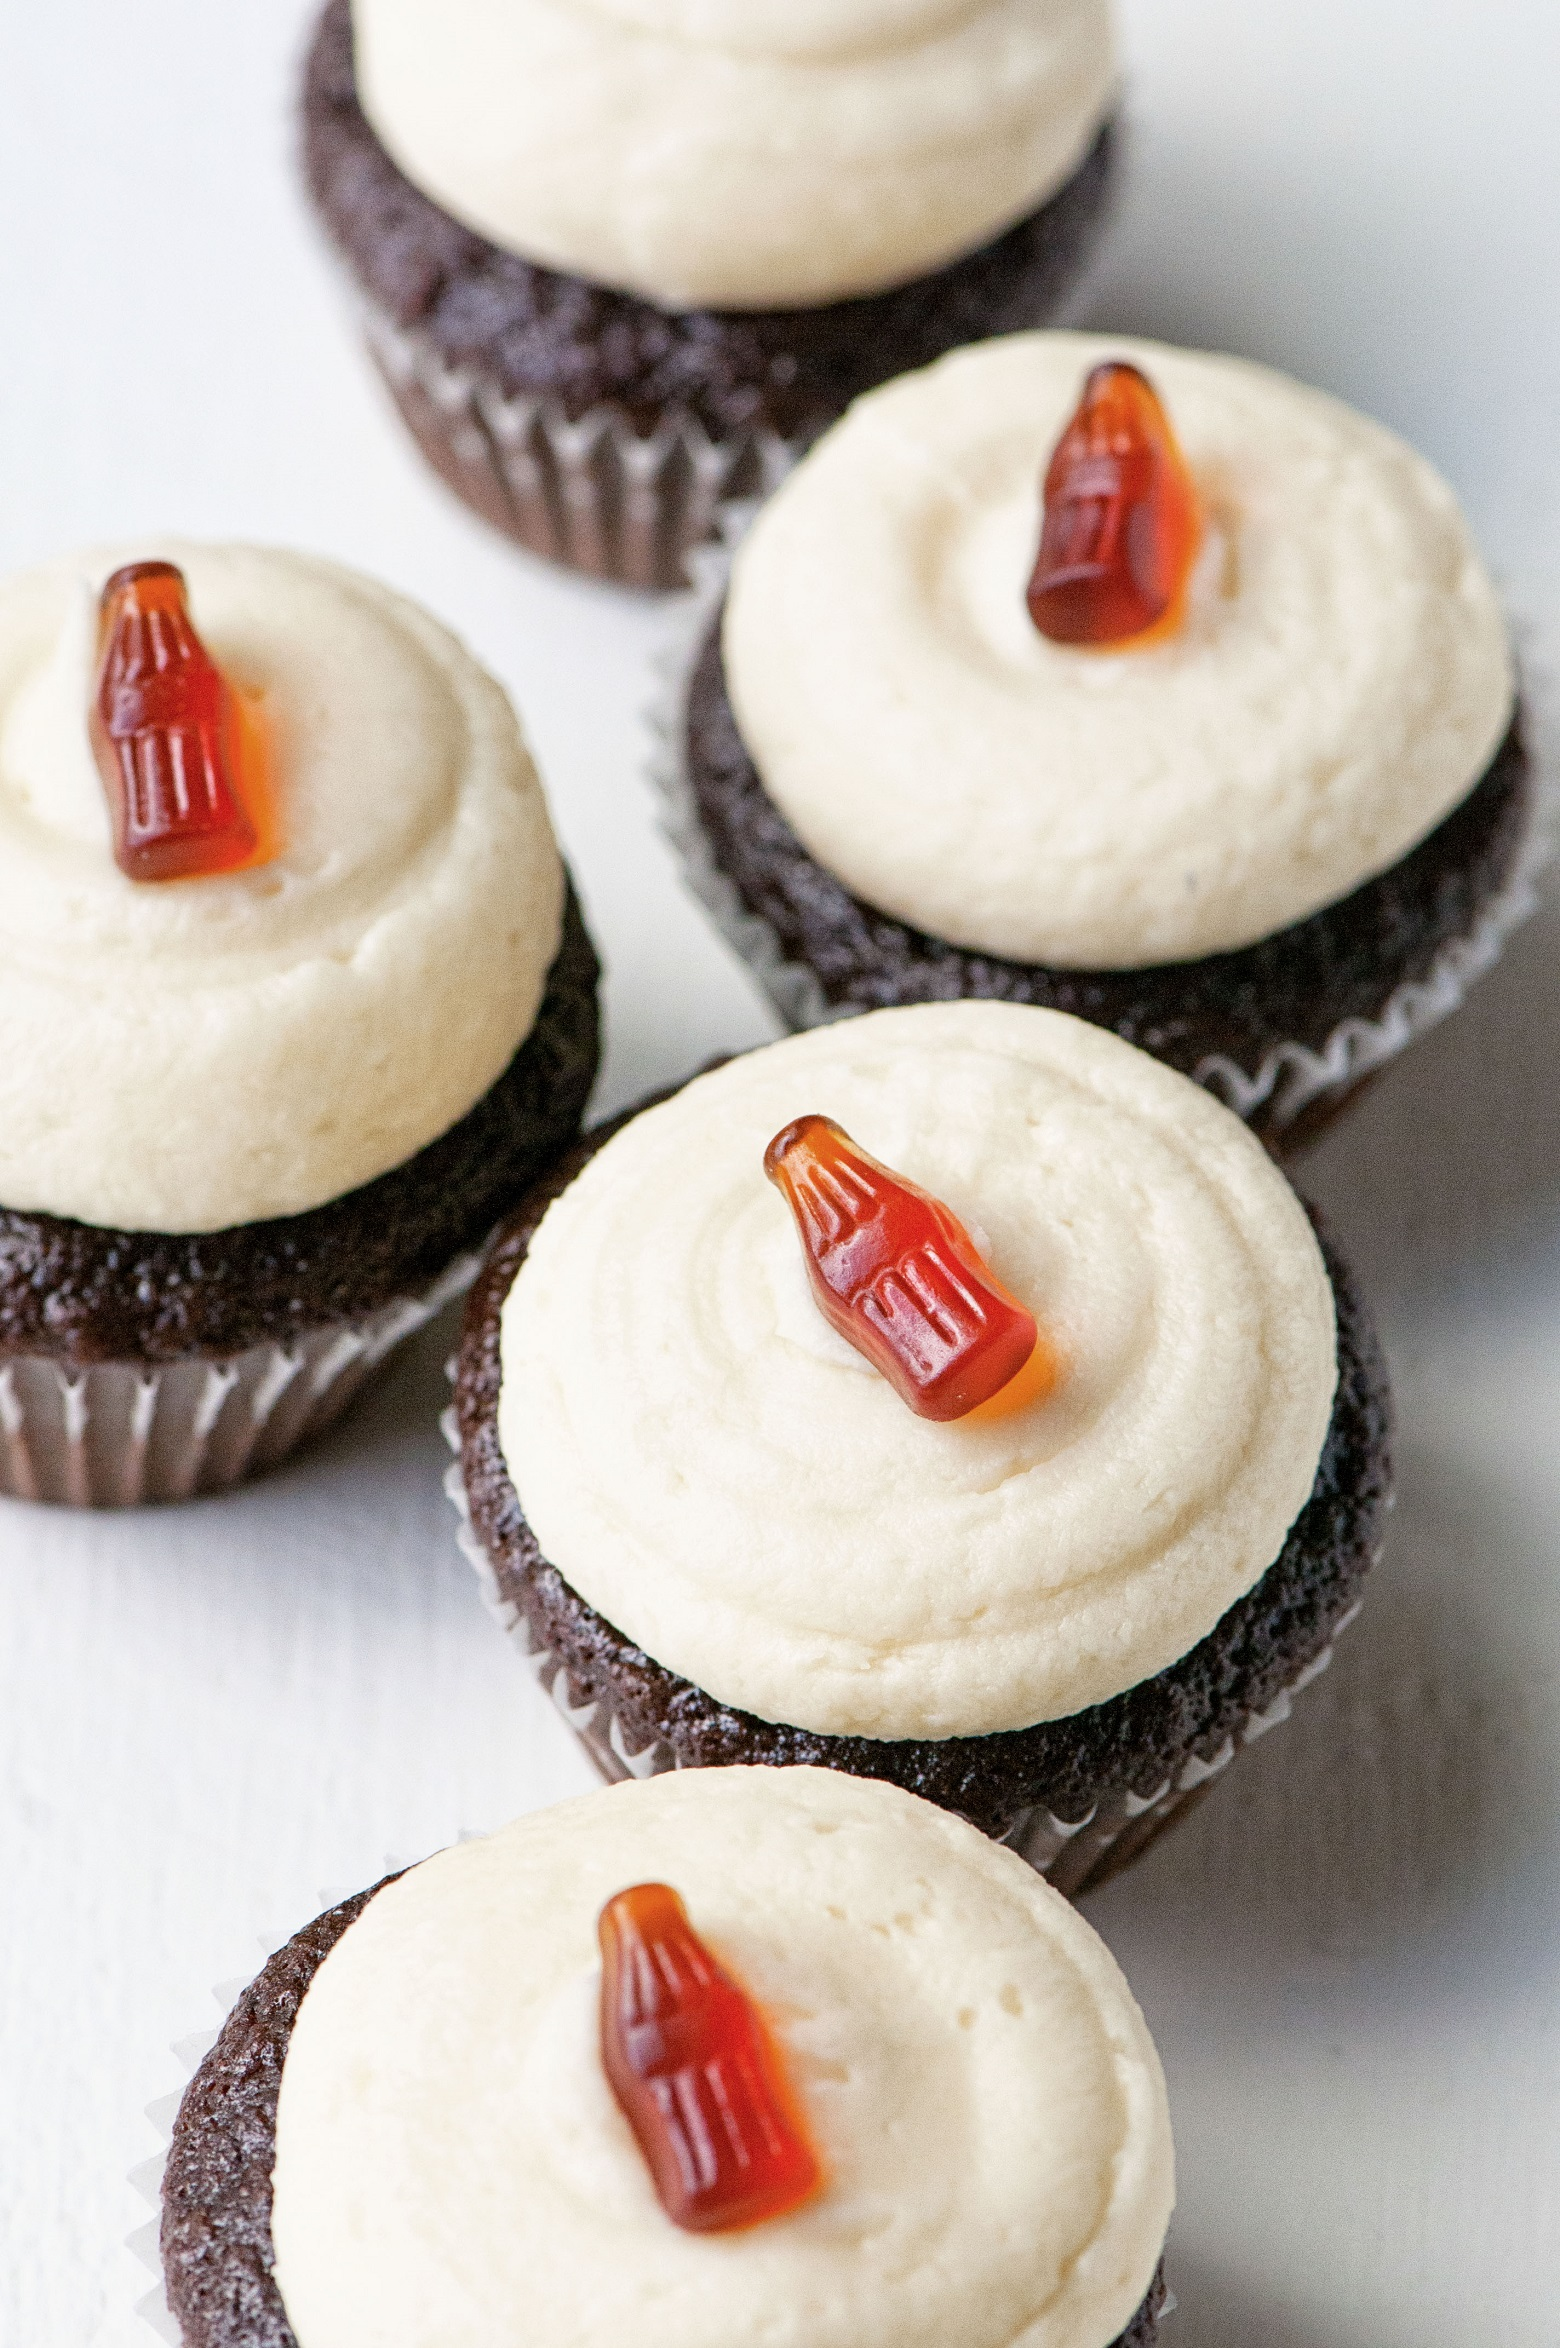 jack-and-coke-cupcakes-001